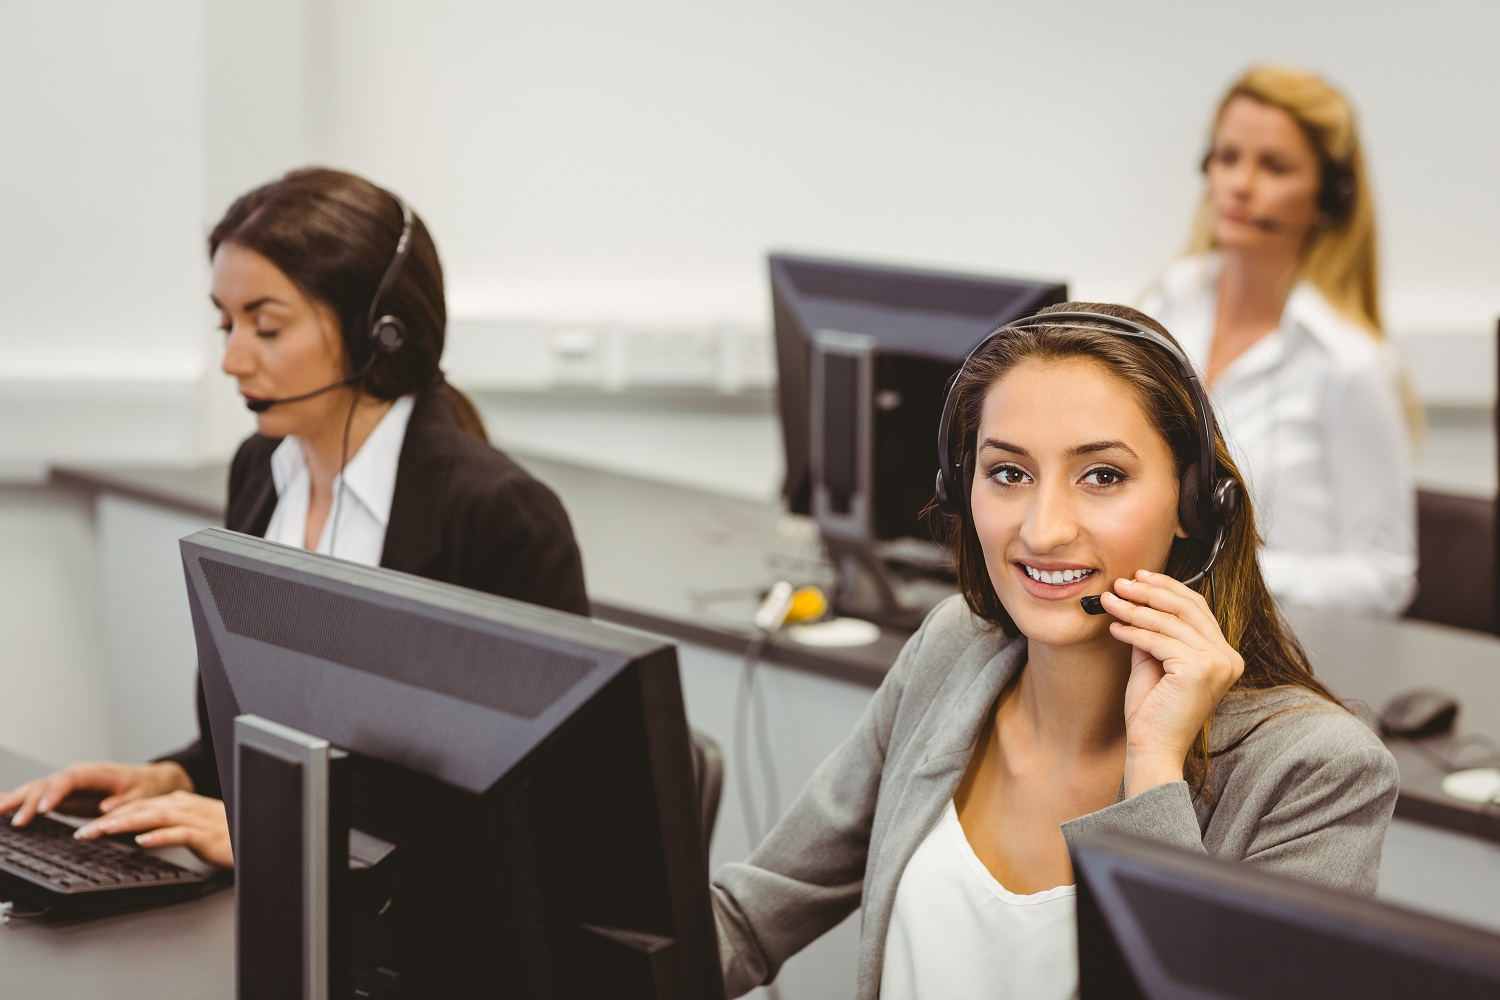 Meeting a customer's expectations by providing a good service is enhanced by Cogito. Not only does this improve satisfaction but creates loyalty for any call center which functions effectively.